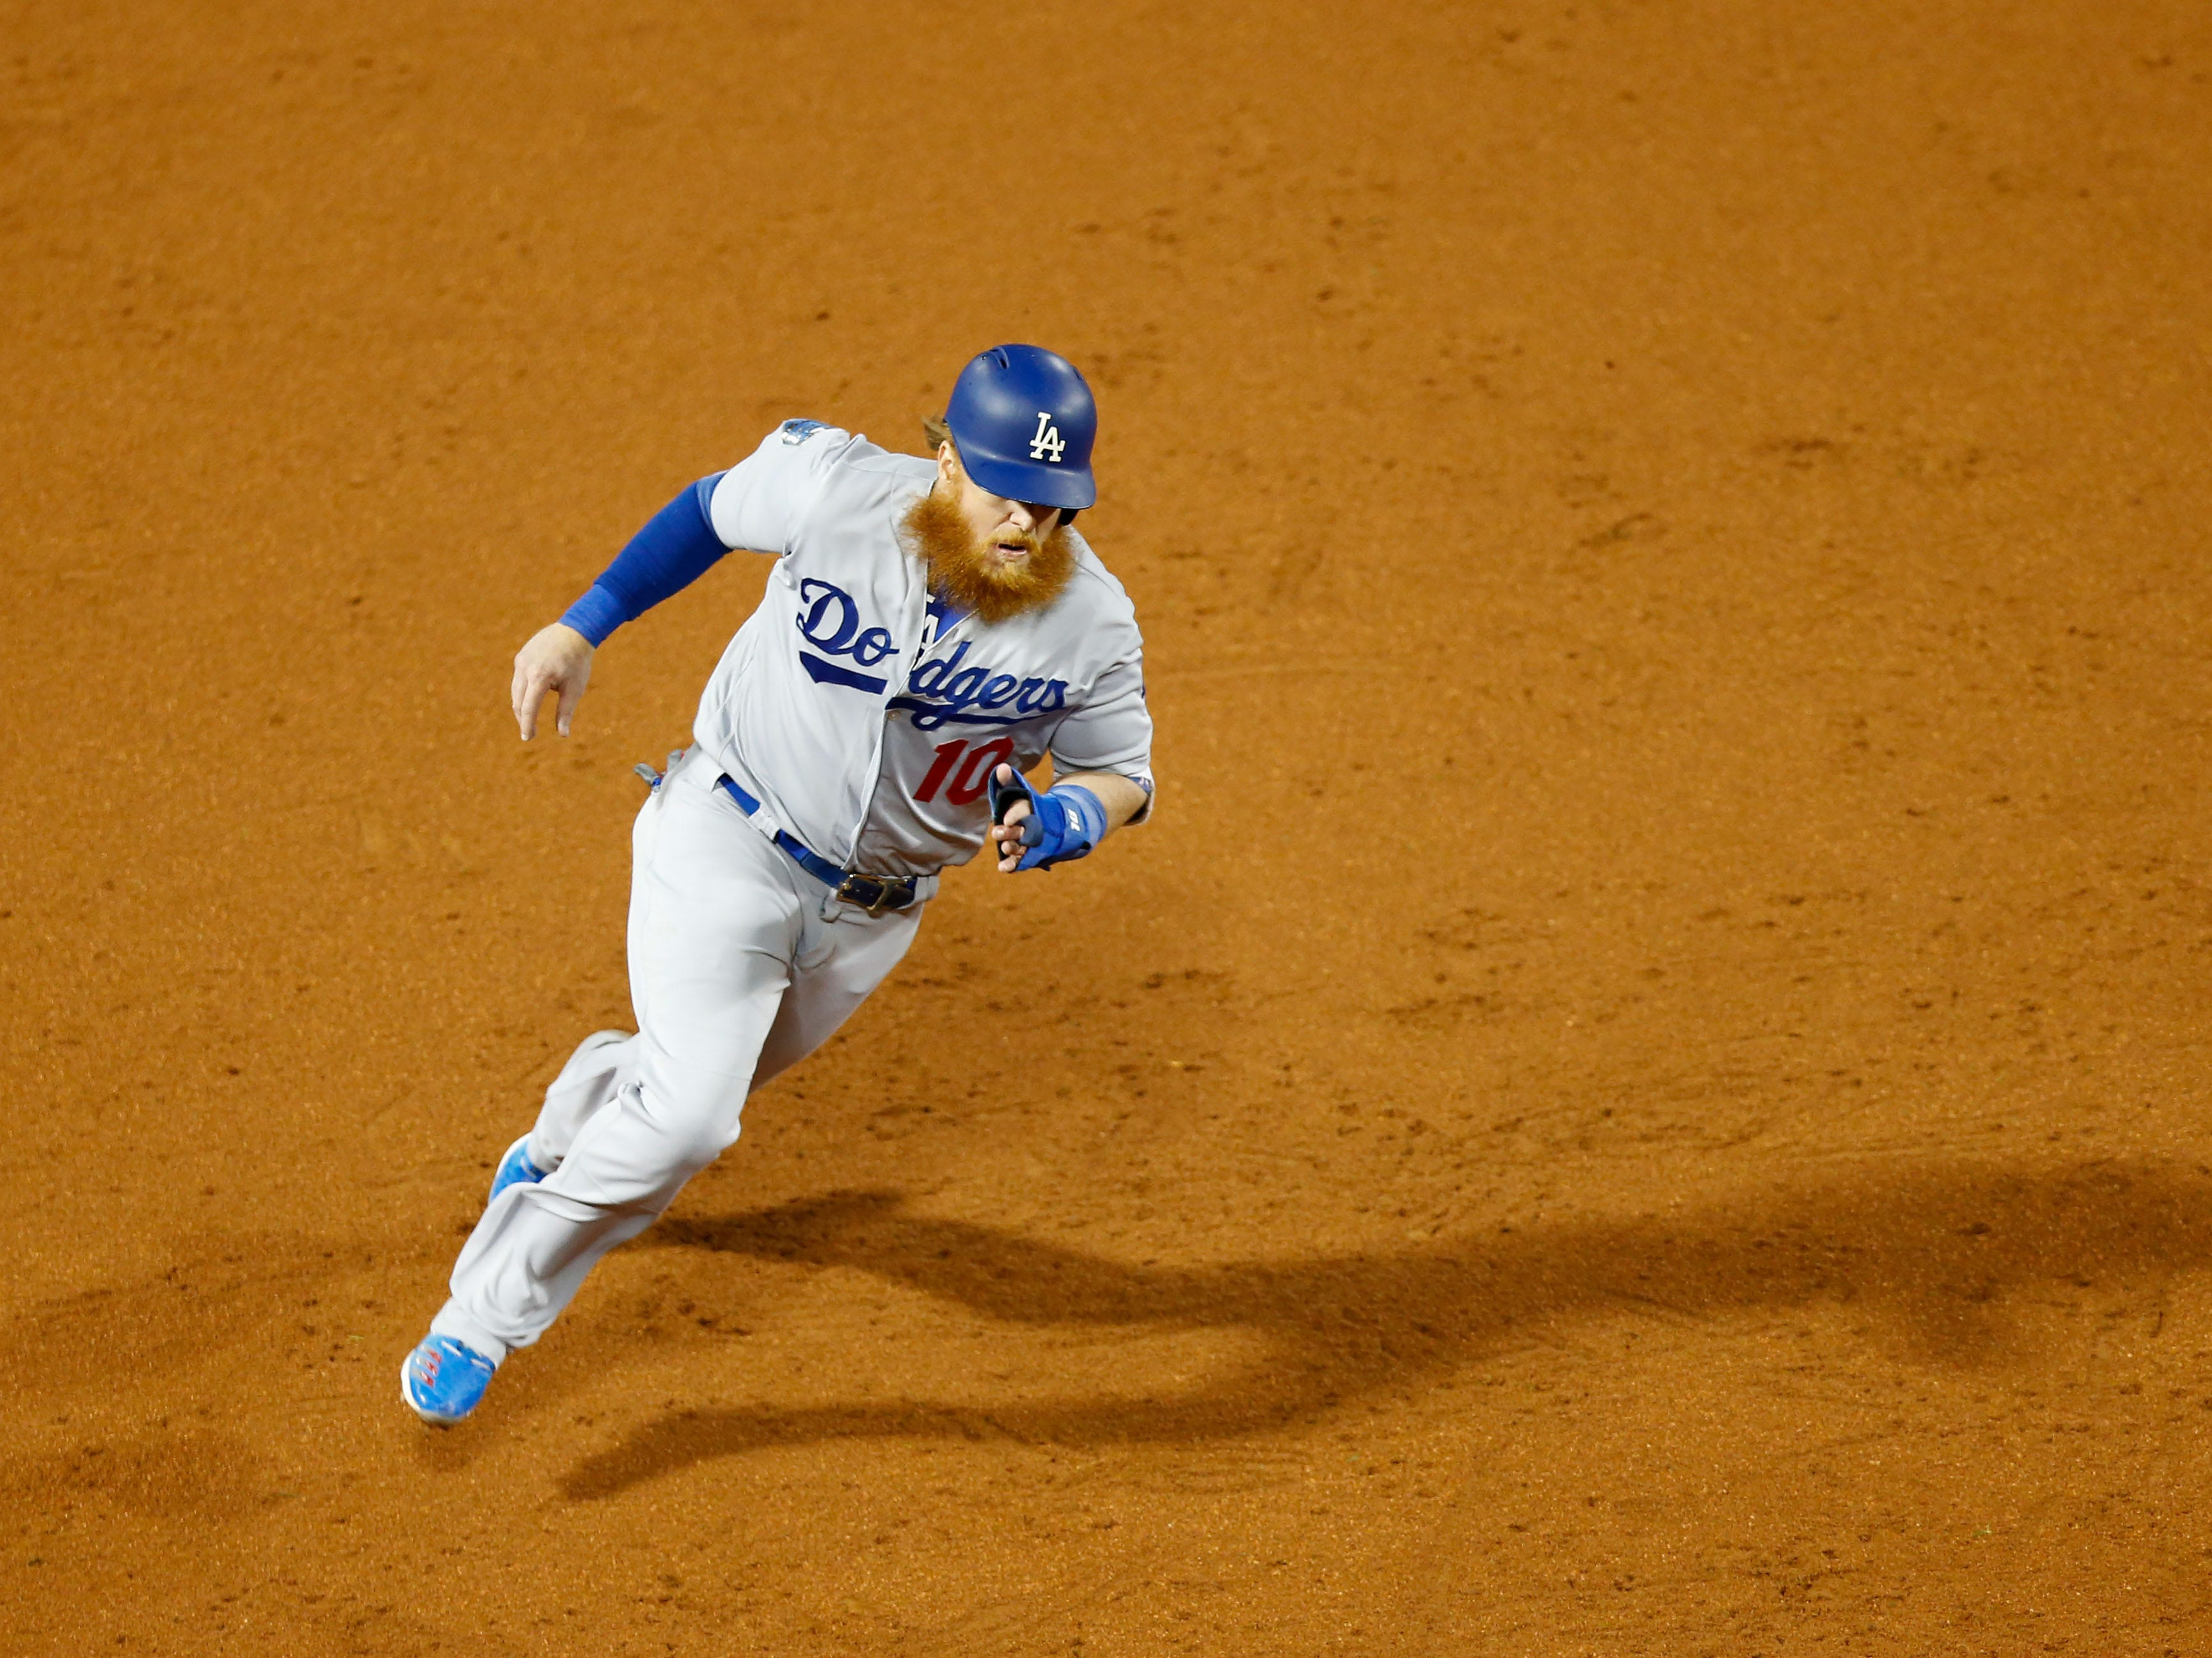 Game 1 at Fenway Park: Justin Turner rounds third base to score in the third inning.